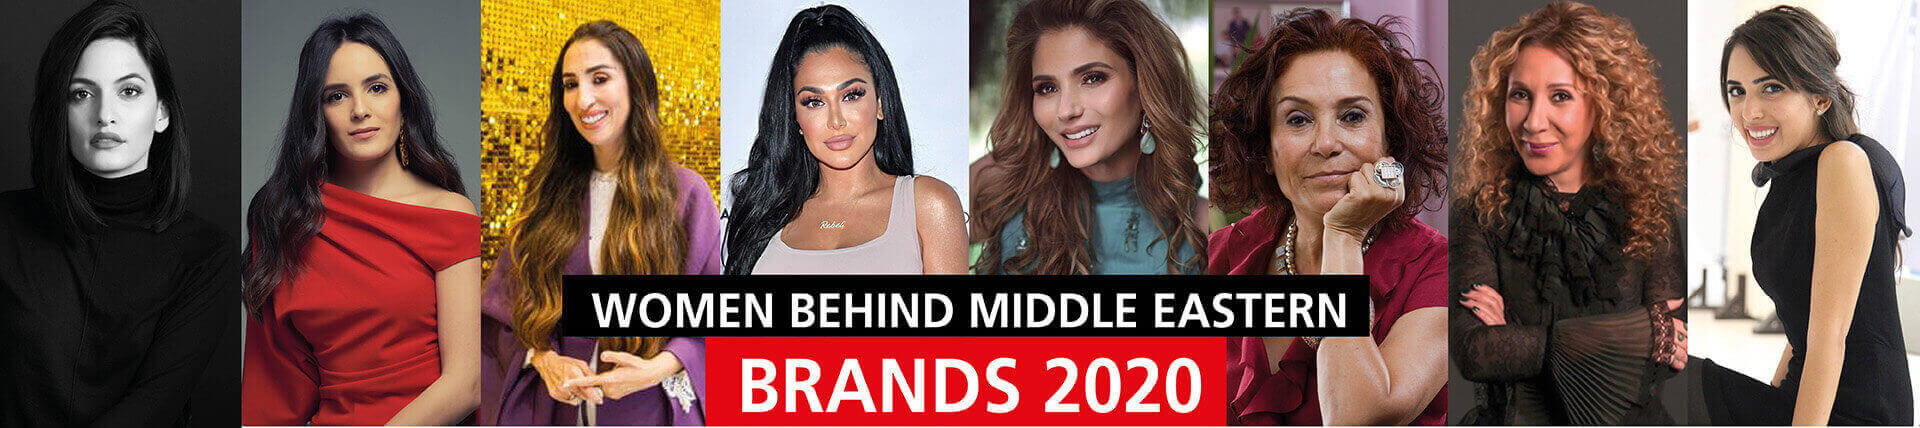 Women Behind Middle Eastern Brands 2020